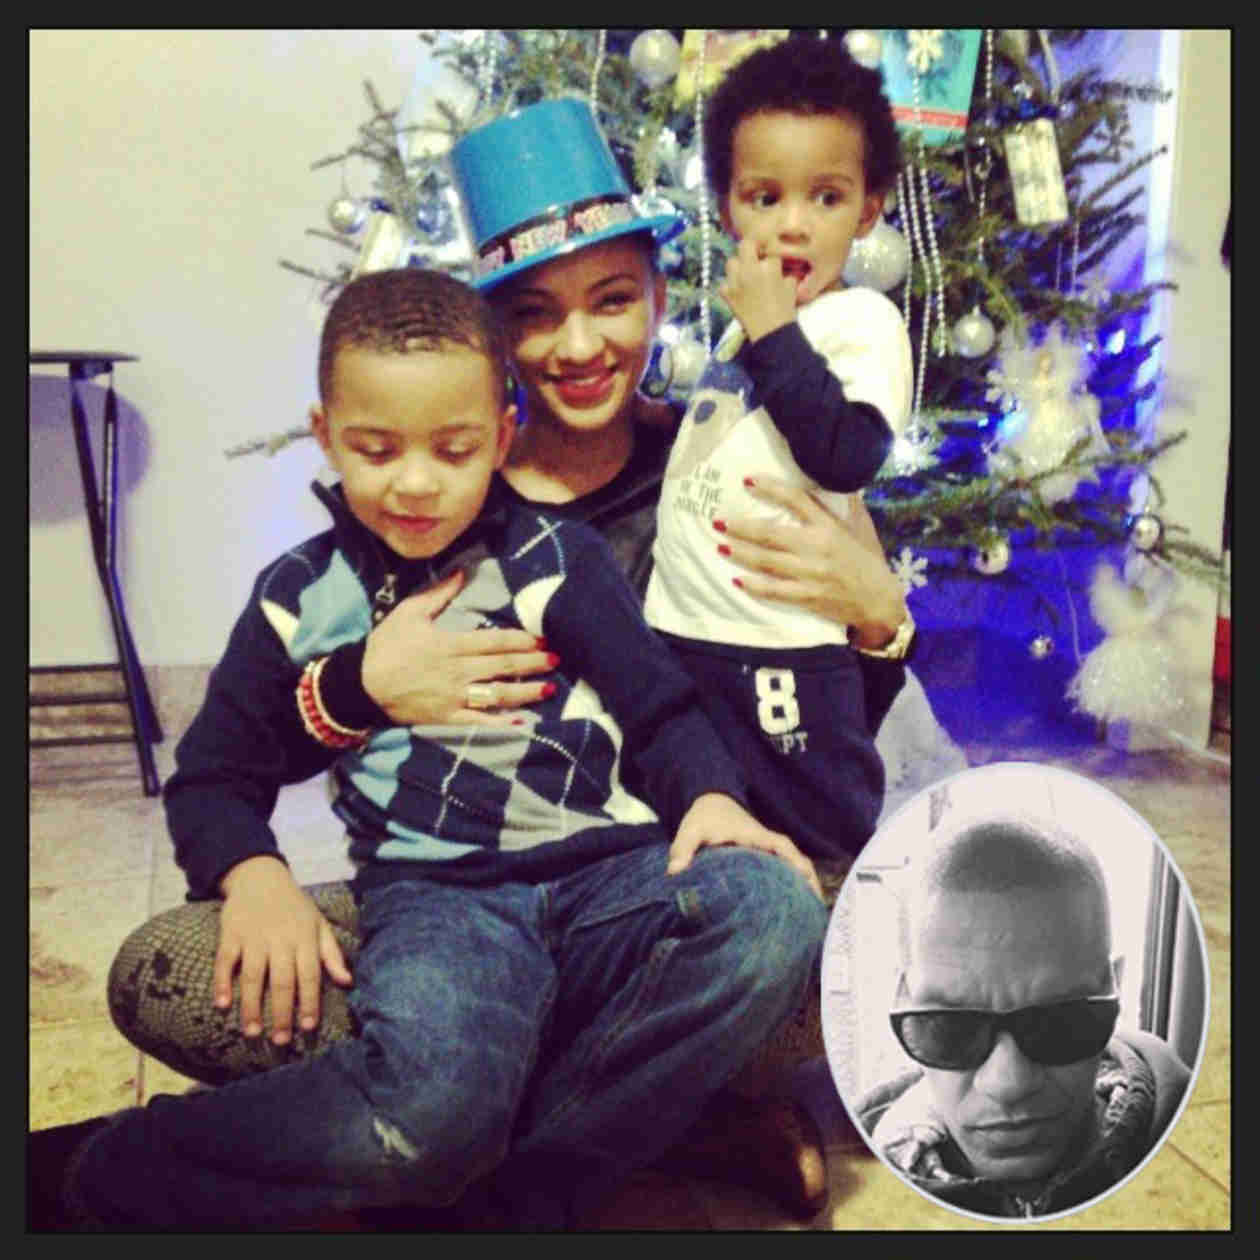 Tara Wallace and Peter Gunz Sons Don't Know Amina Buddafly and Their Baby Sis!